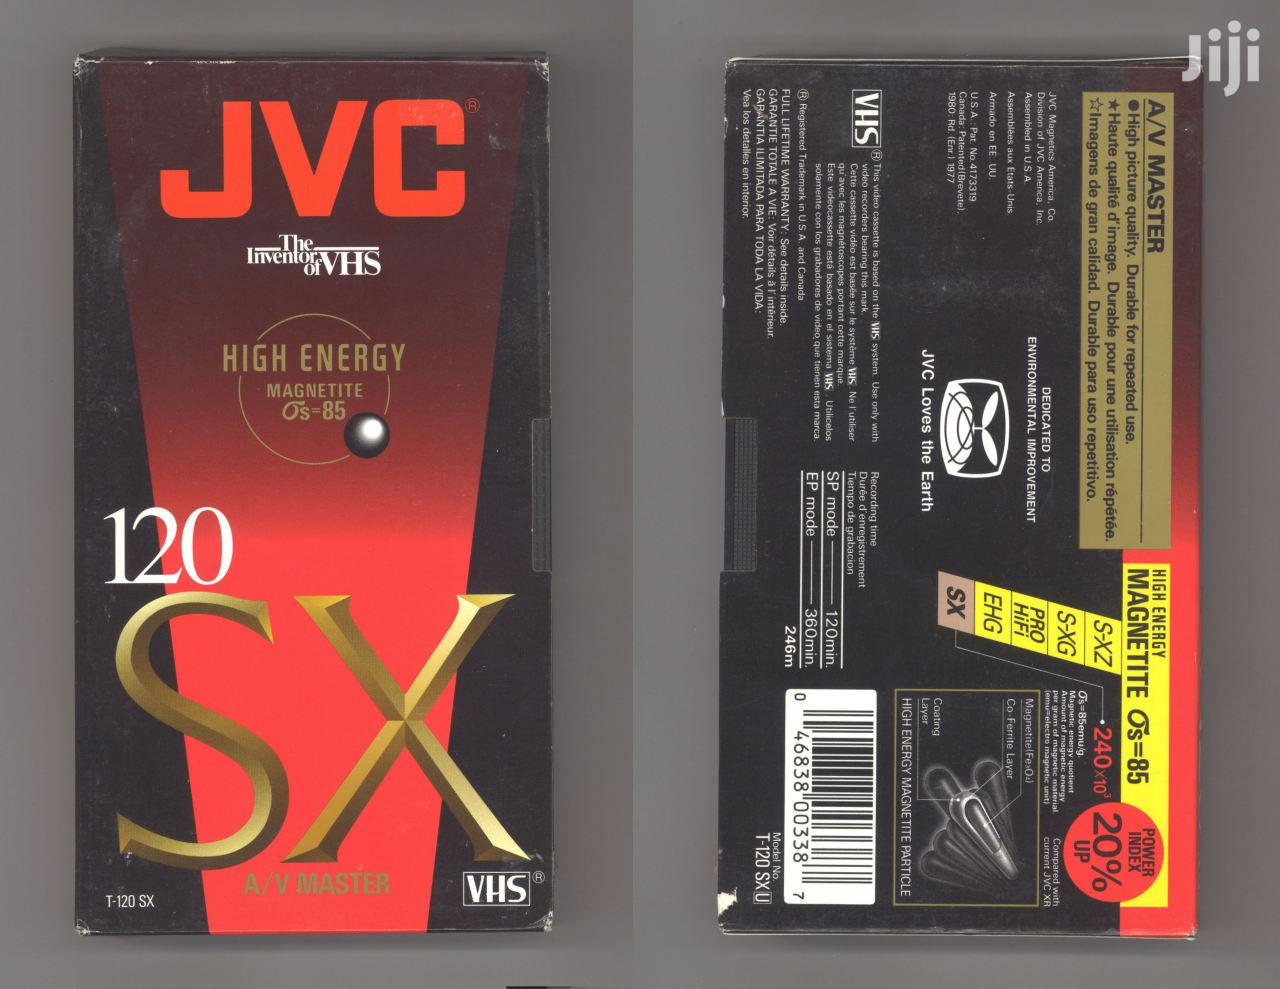 Converting Old Video and Audio Cassette Tapes